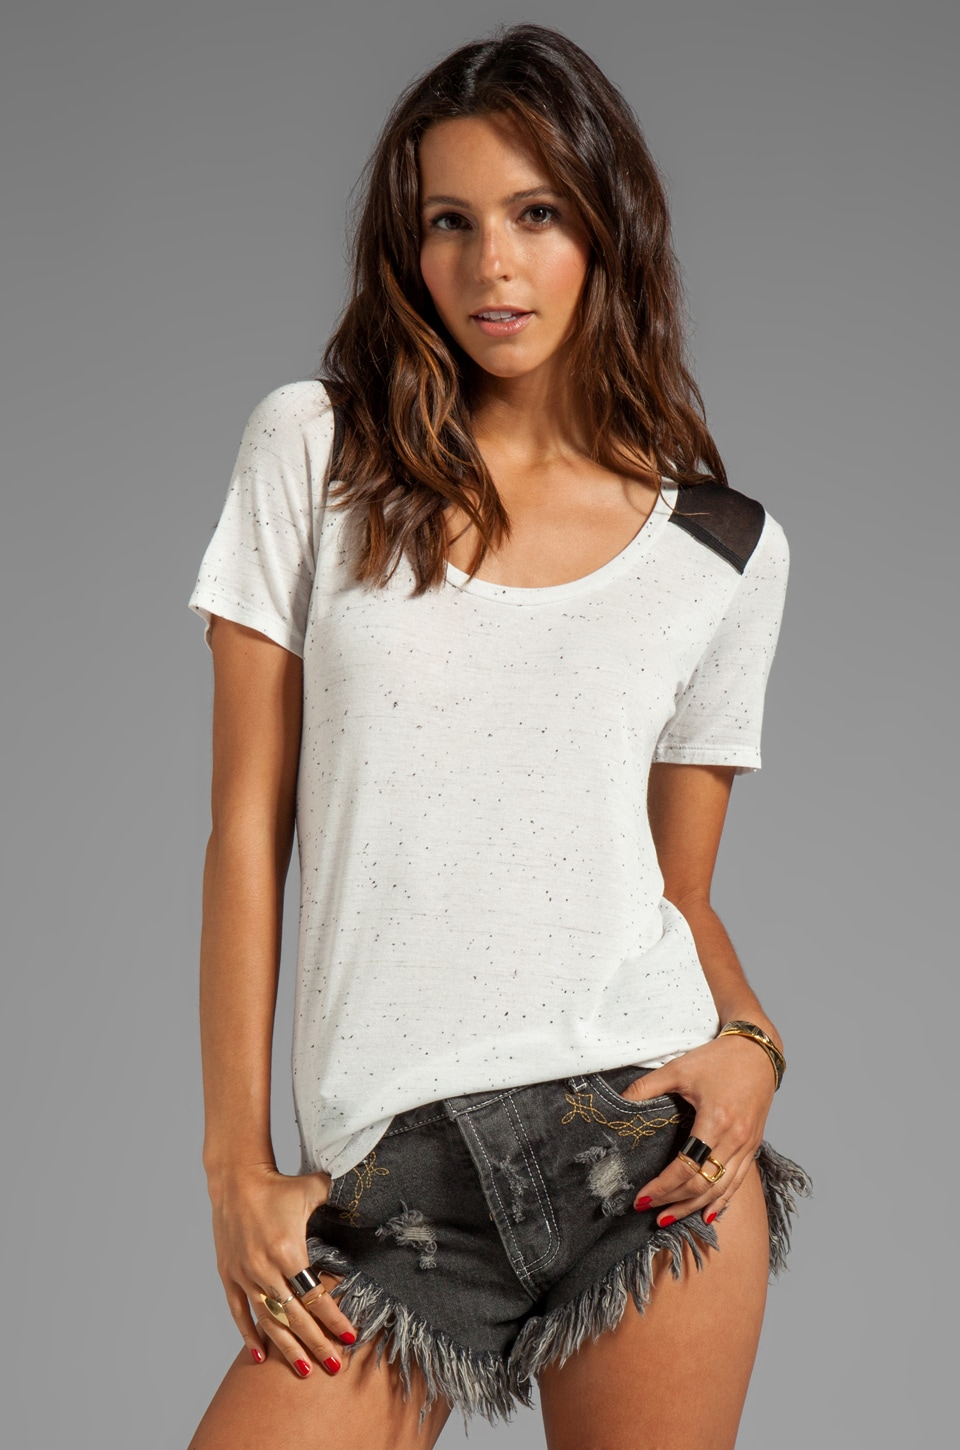 Whetherly Elliot Confetti Top in White/Black